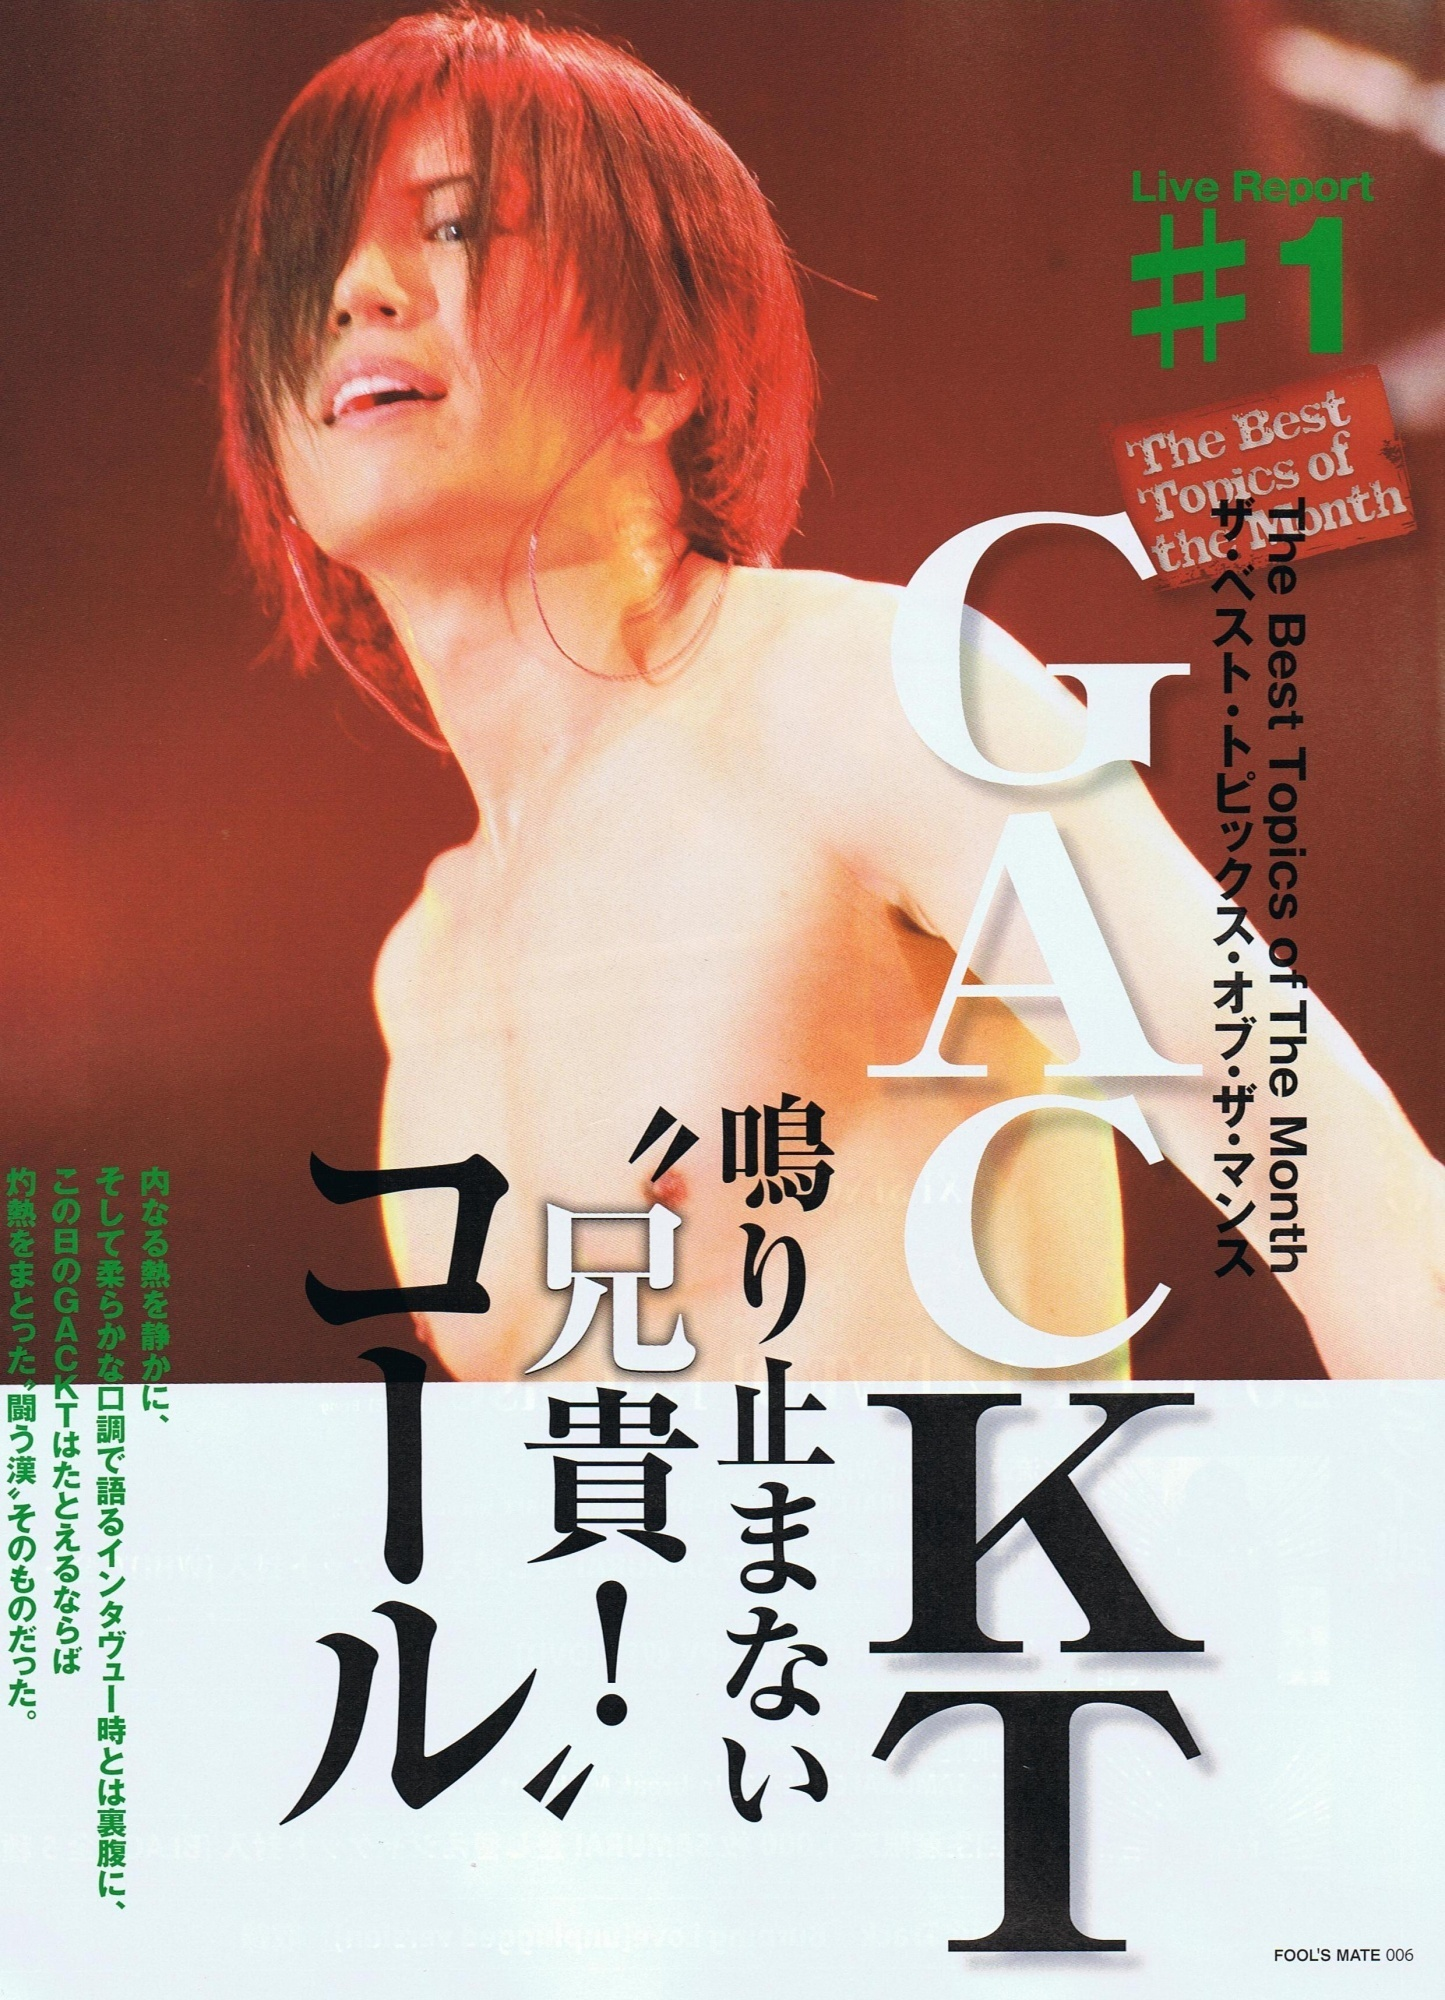 Gackt Live Tour 2004 THE SIXTH DAY & SEVENTH NIGHT 〜FINAL ...